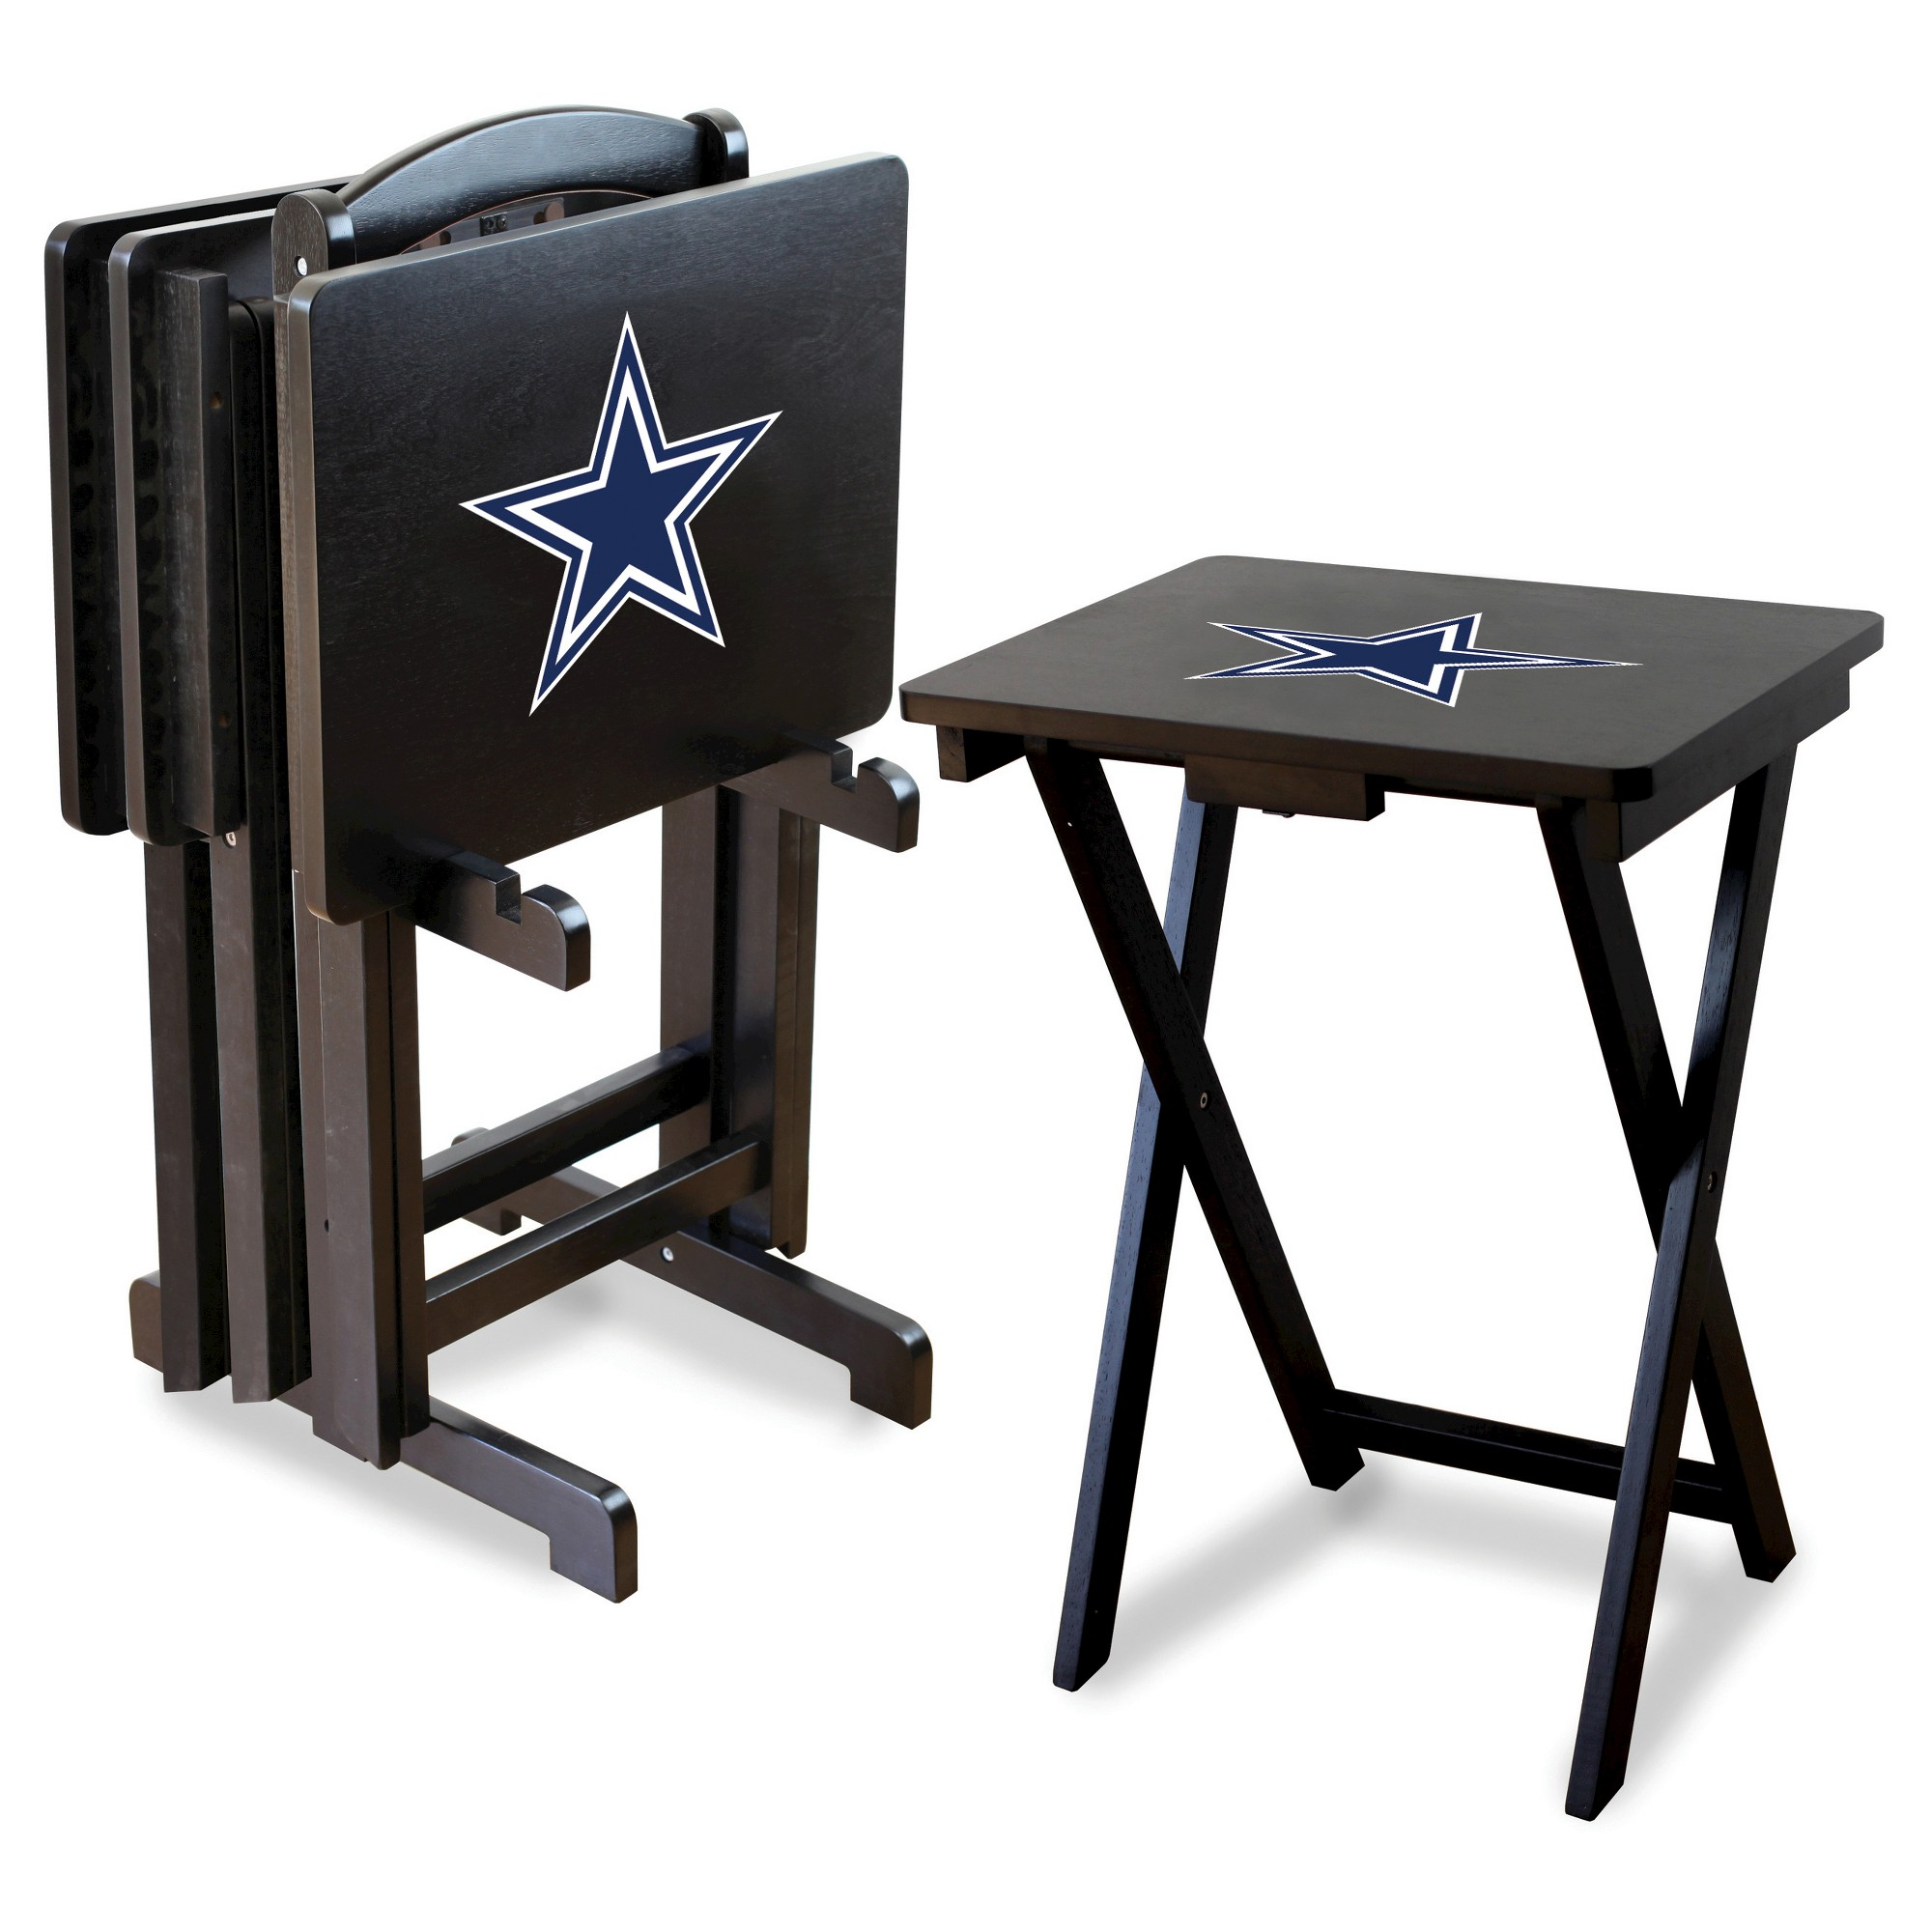 Imperial Tv Trays With Stand 4 Pk Dallas Cowboys Tv Tray Set Tv Tray Table Tv Trays